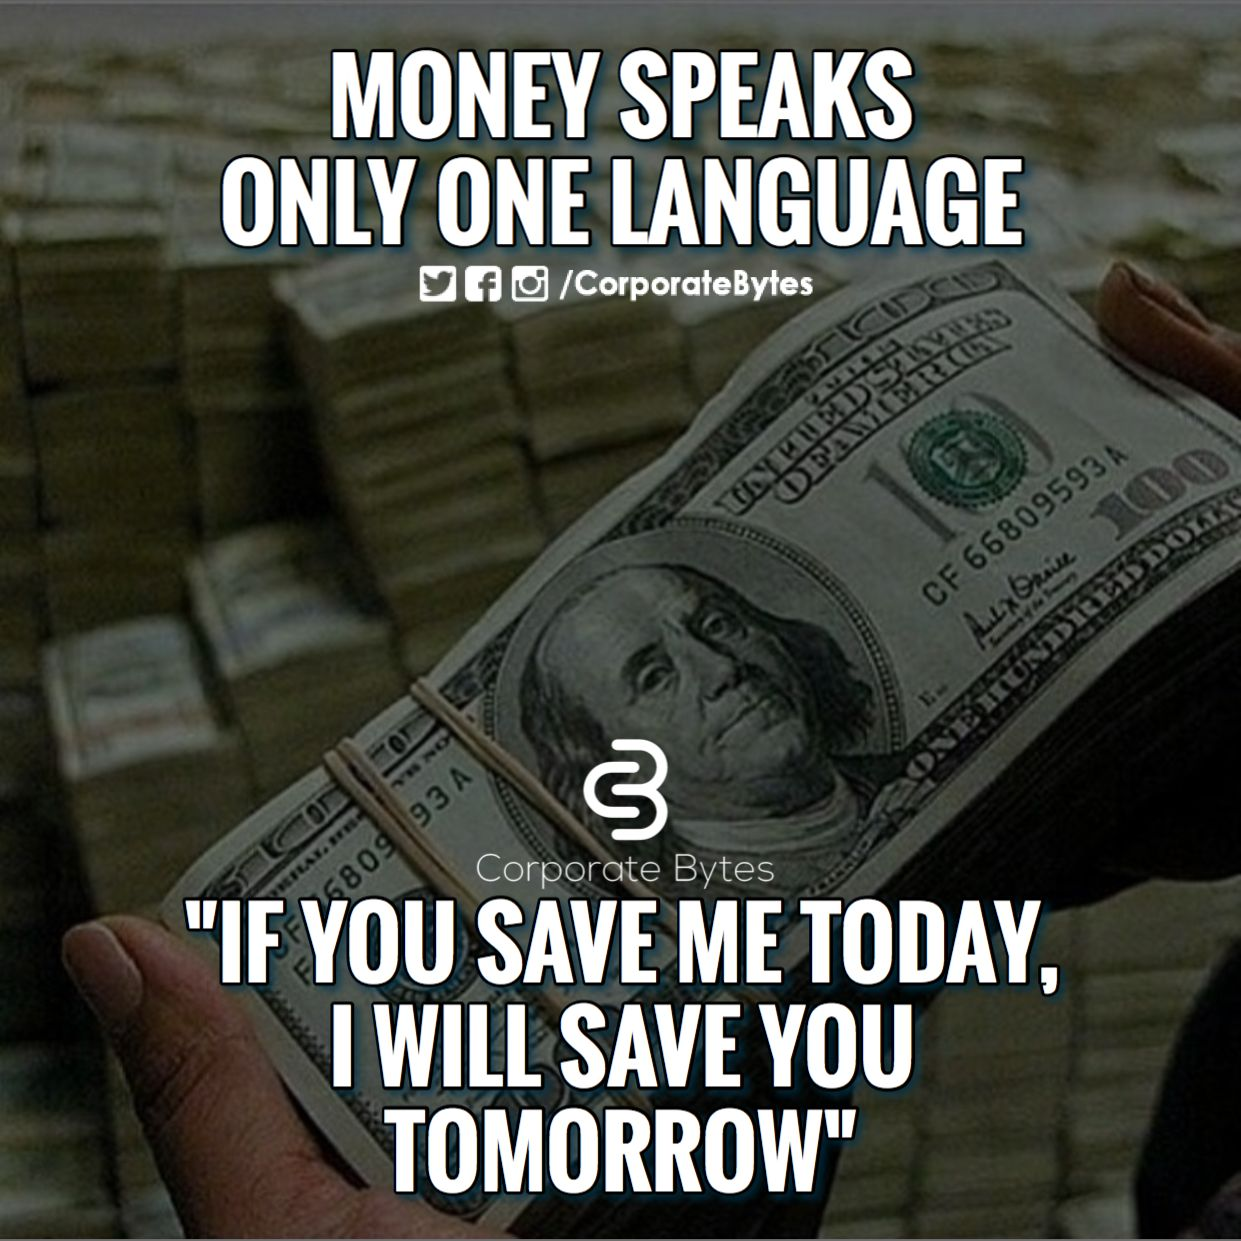 Saving Quotes: Money Speaks Only One Language. If You Save Me Today, I